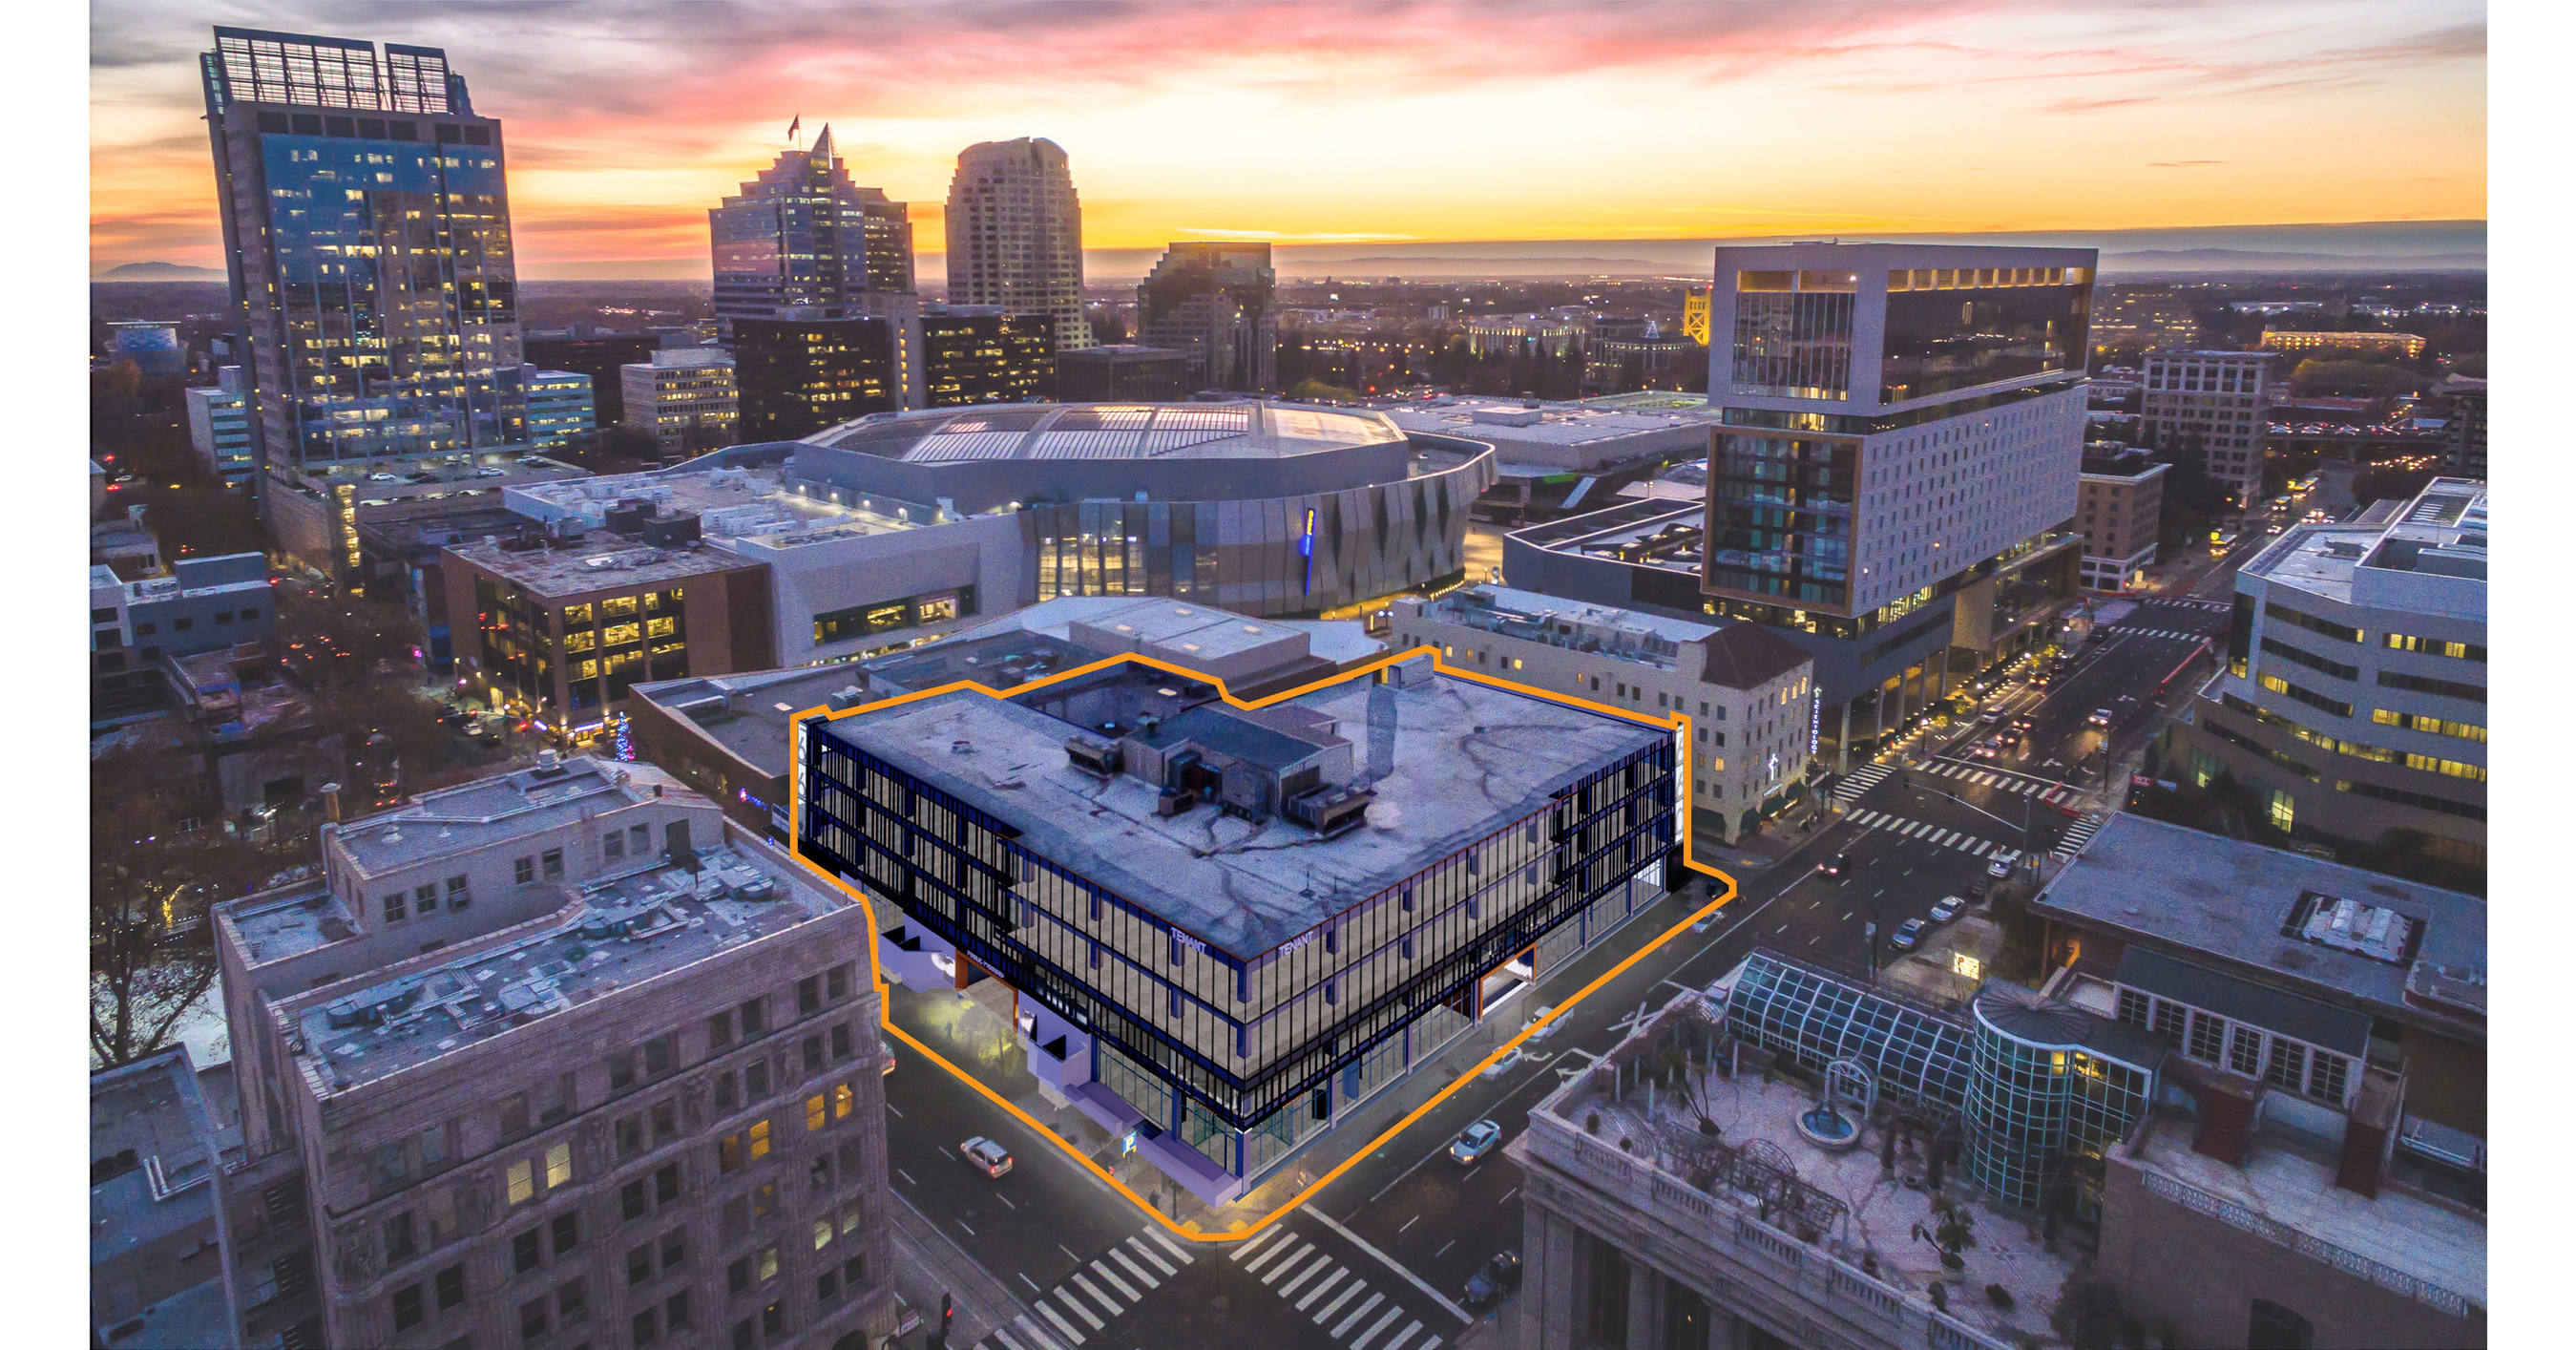 Access here alternative investment news about Revoz Capital Closes New Opportunity Zone Investment In Downtown Sacramento